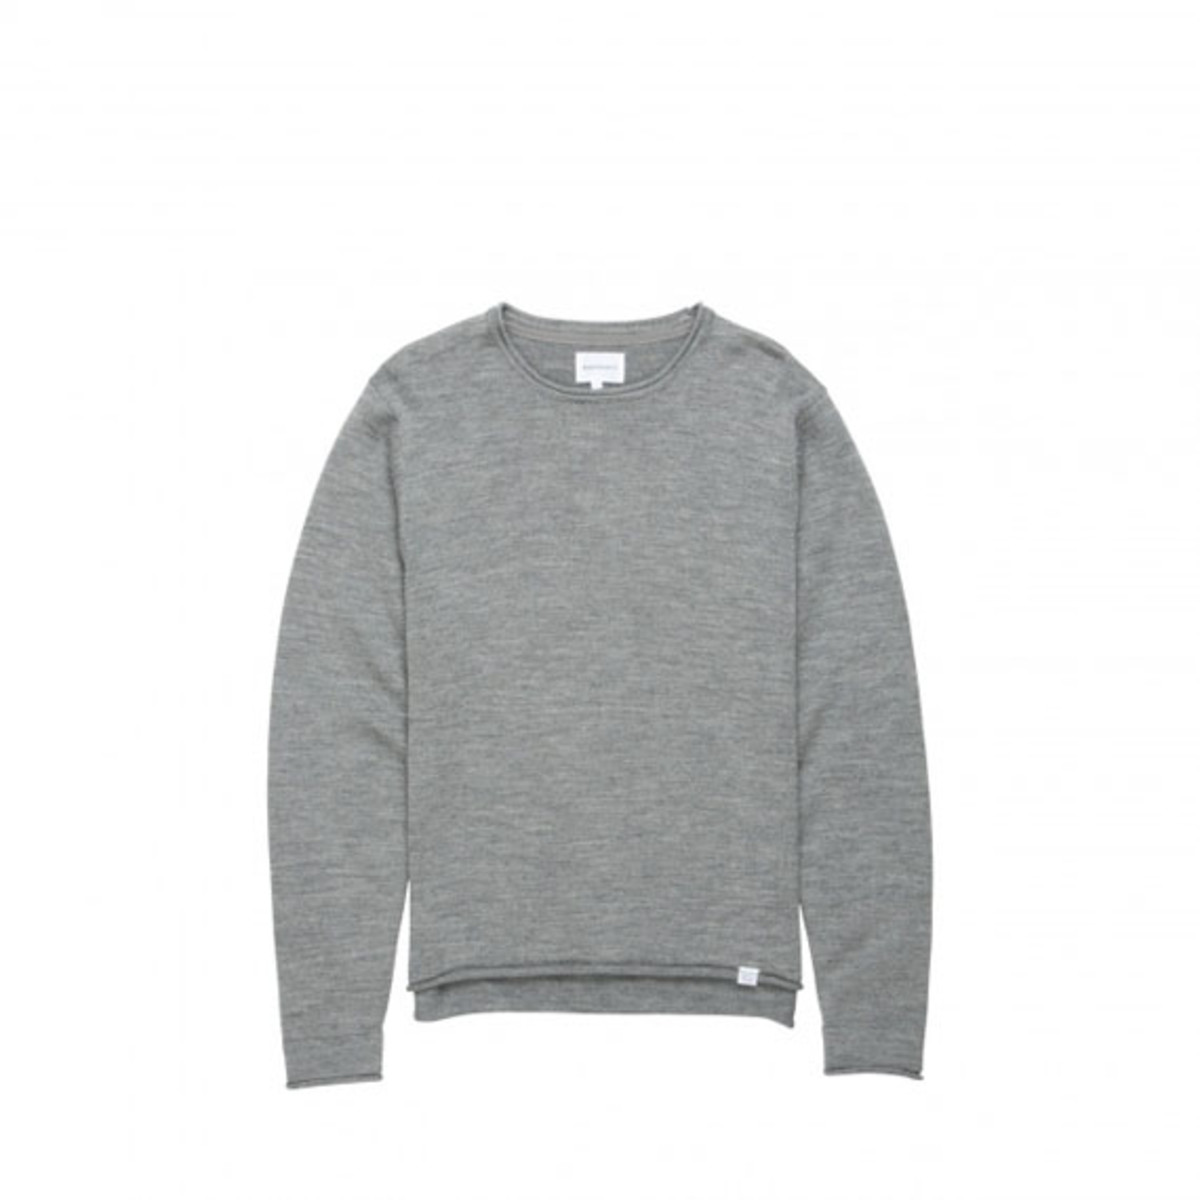 norse-projects-fall-winter-2013-collection-06